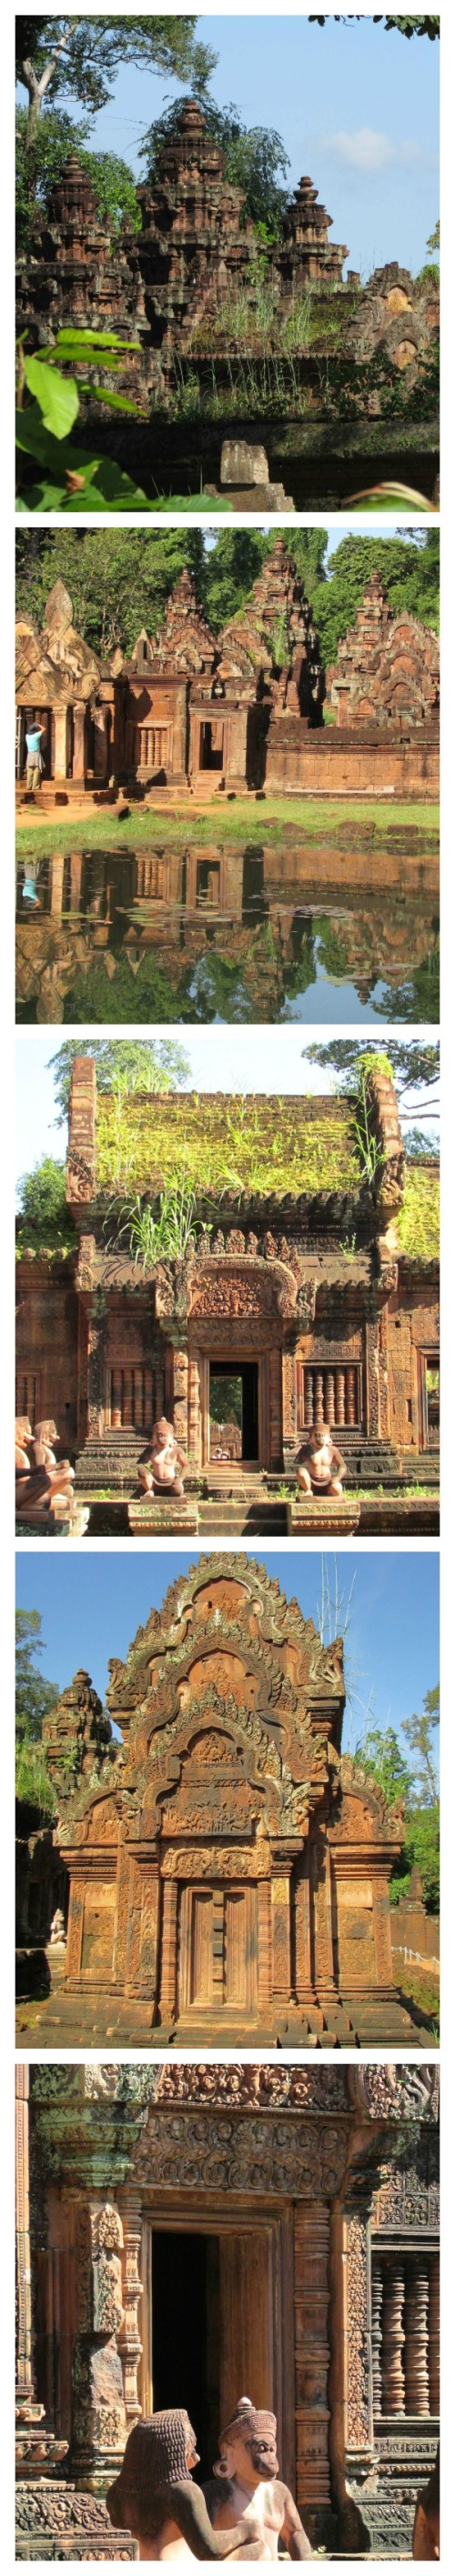 Banteay Srei Buildings Collage